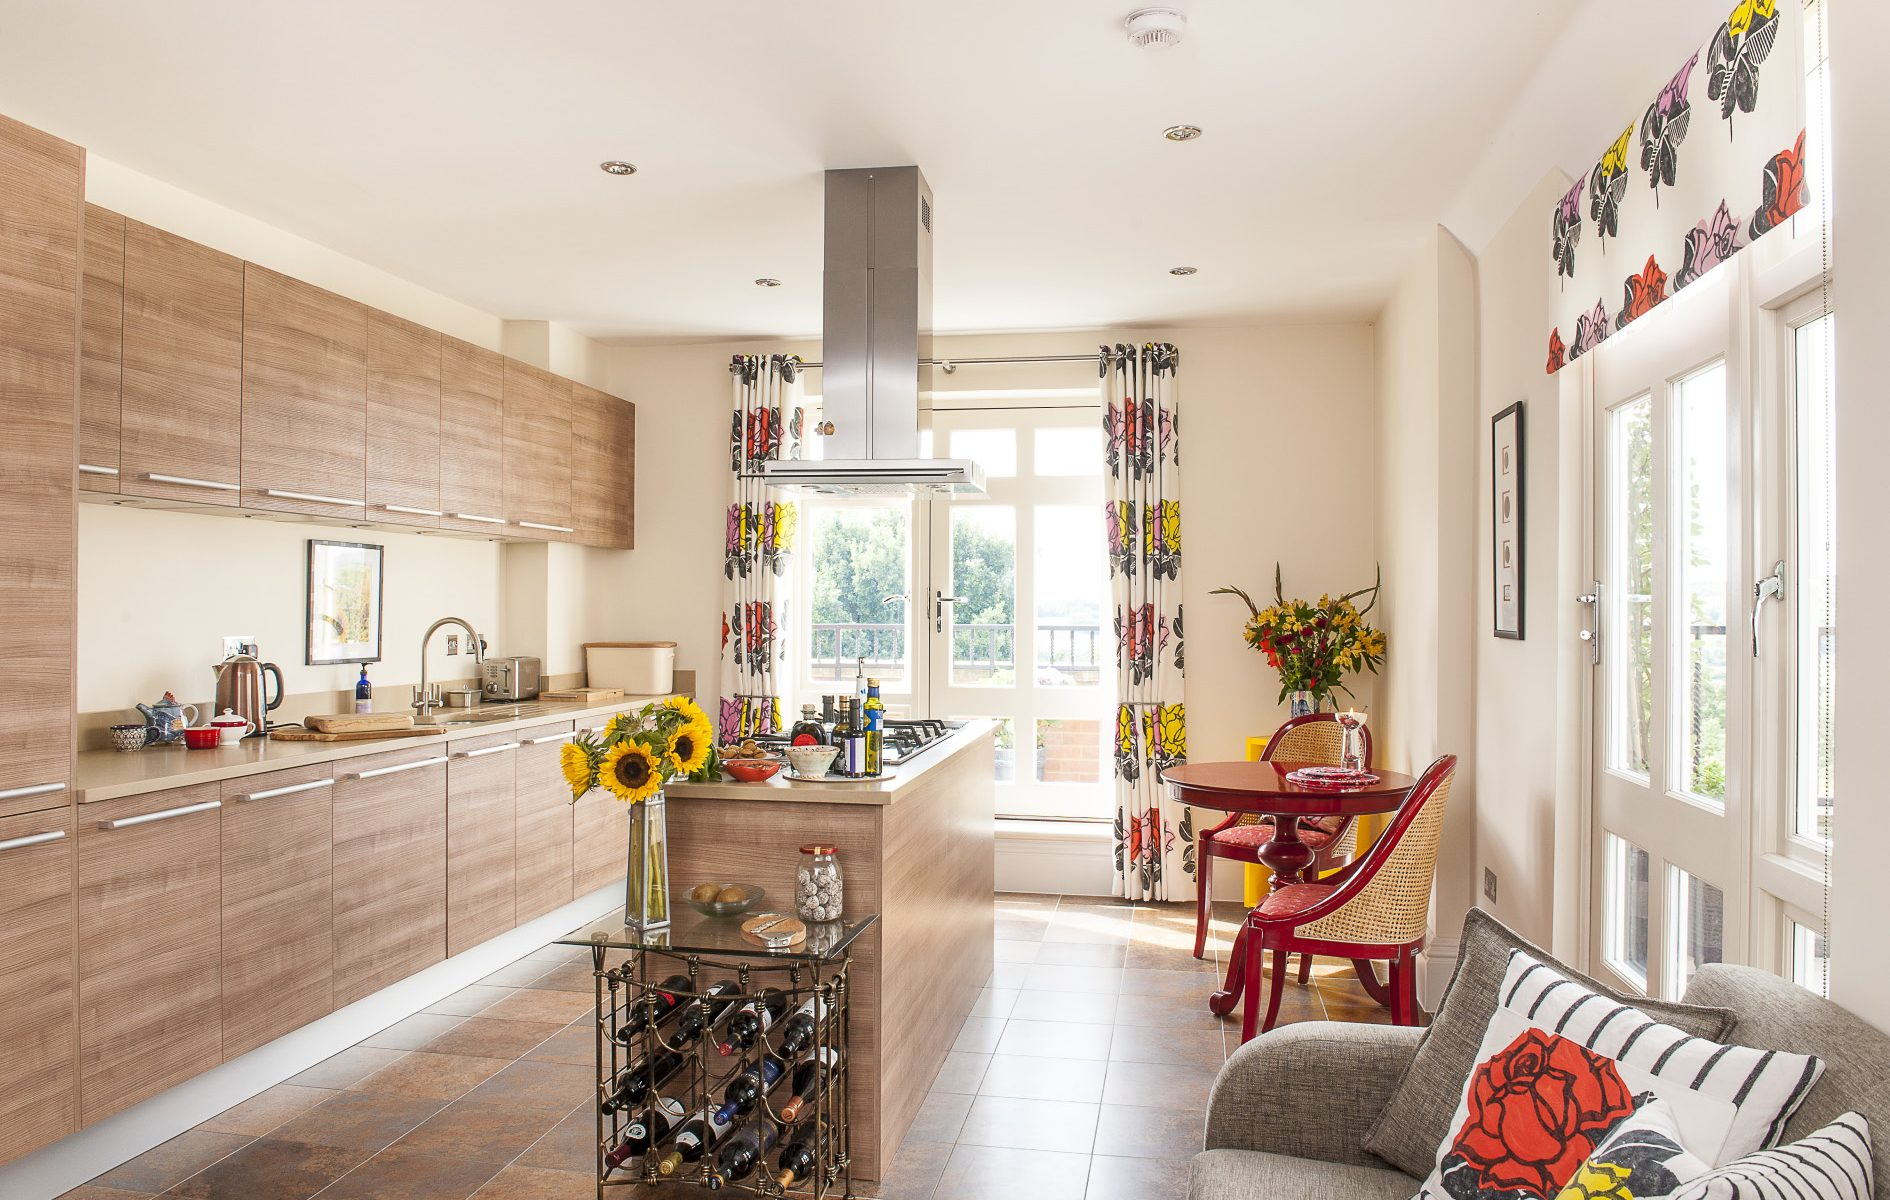 The state-of-the-art kitchen has been well thought out. It's light and spacious, boasting two sets of French doors, one leading onto a balcony, the other onto a small terrace, both with a wonderful Wealden view